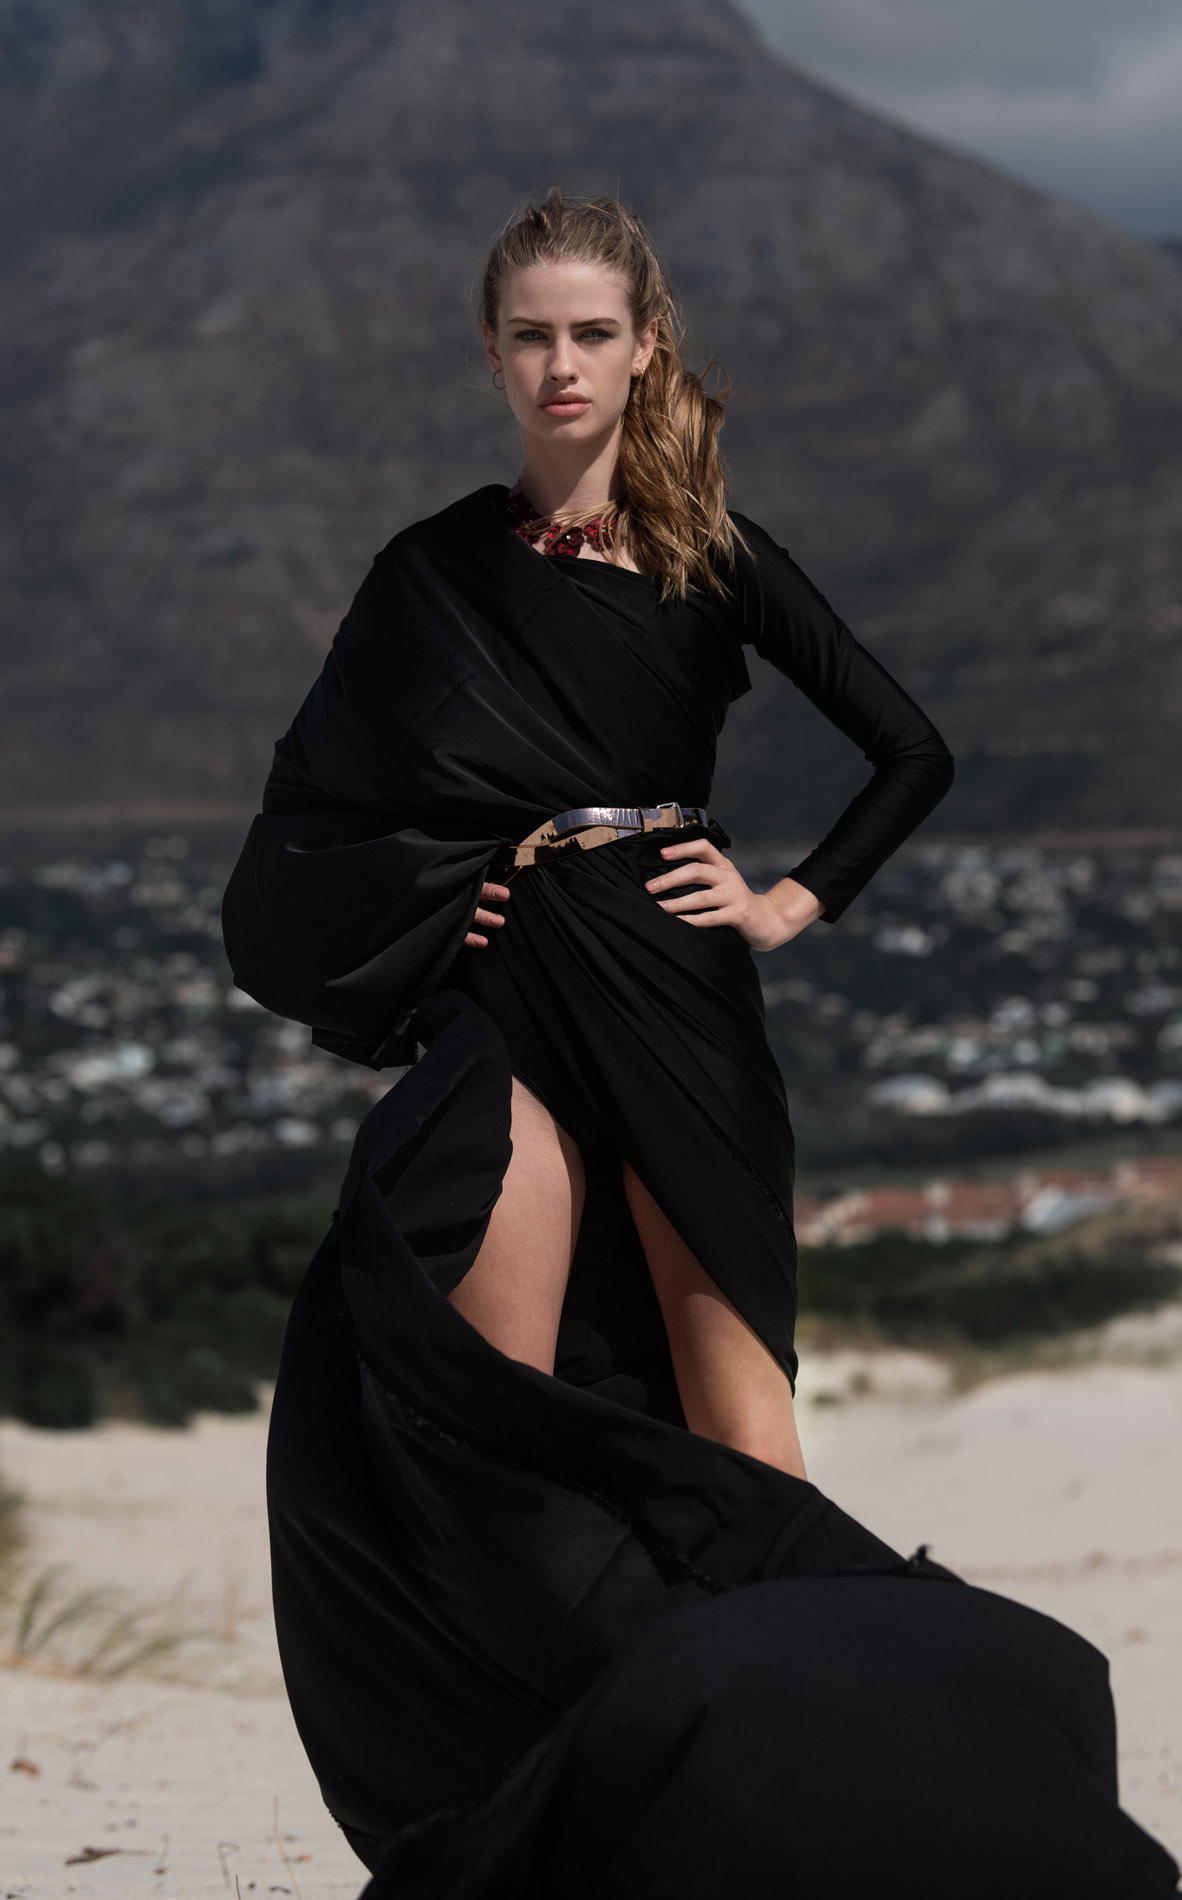 Africa Fashion Editorial by Peter Mueller Photography .jpg95